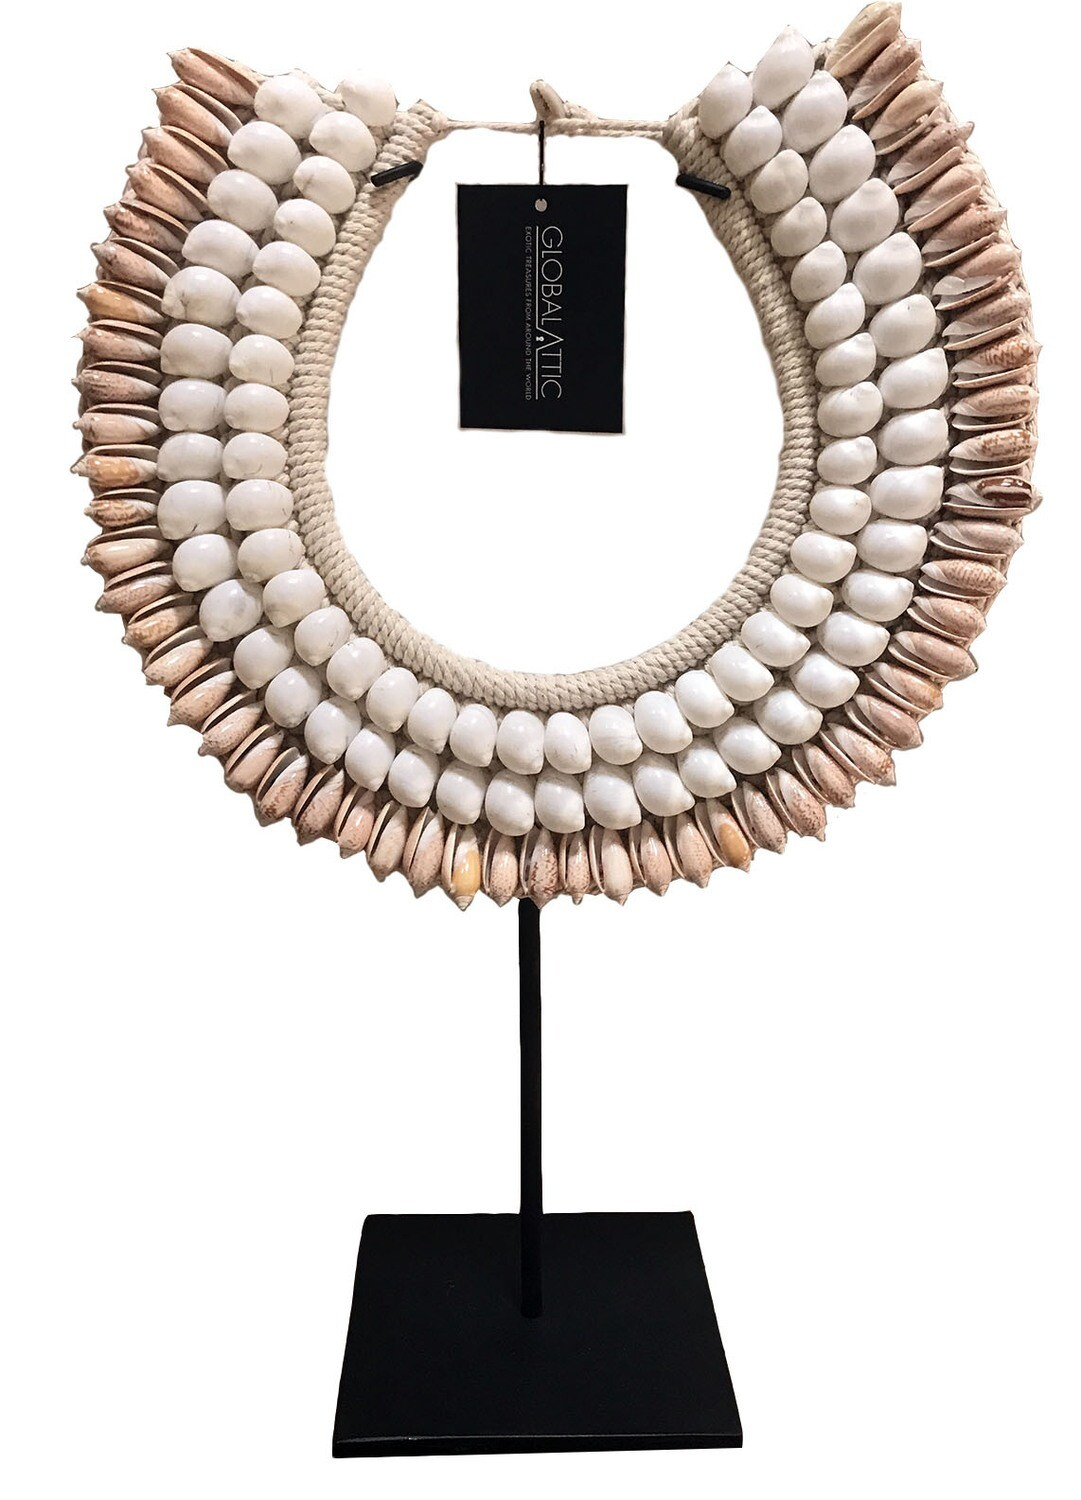 Pink Shell Necklace Decor